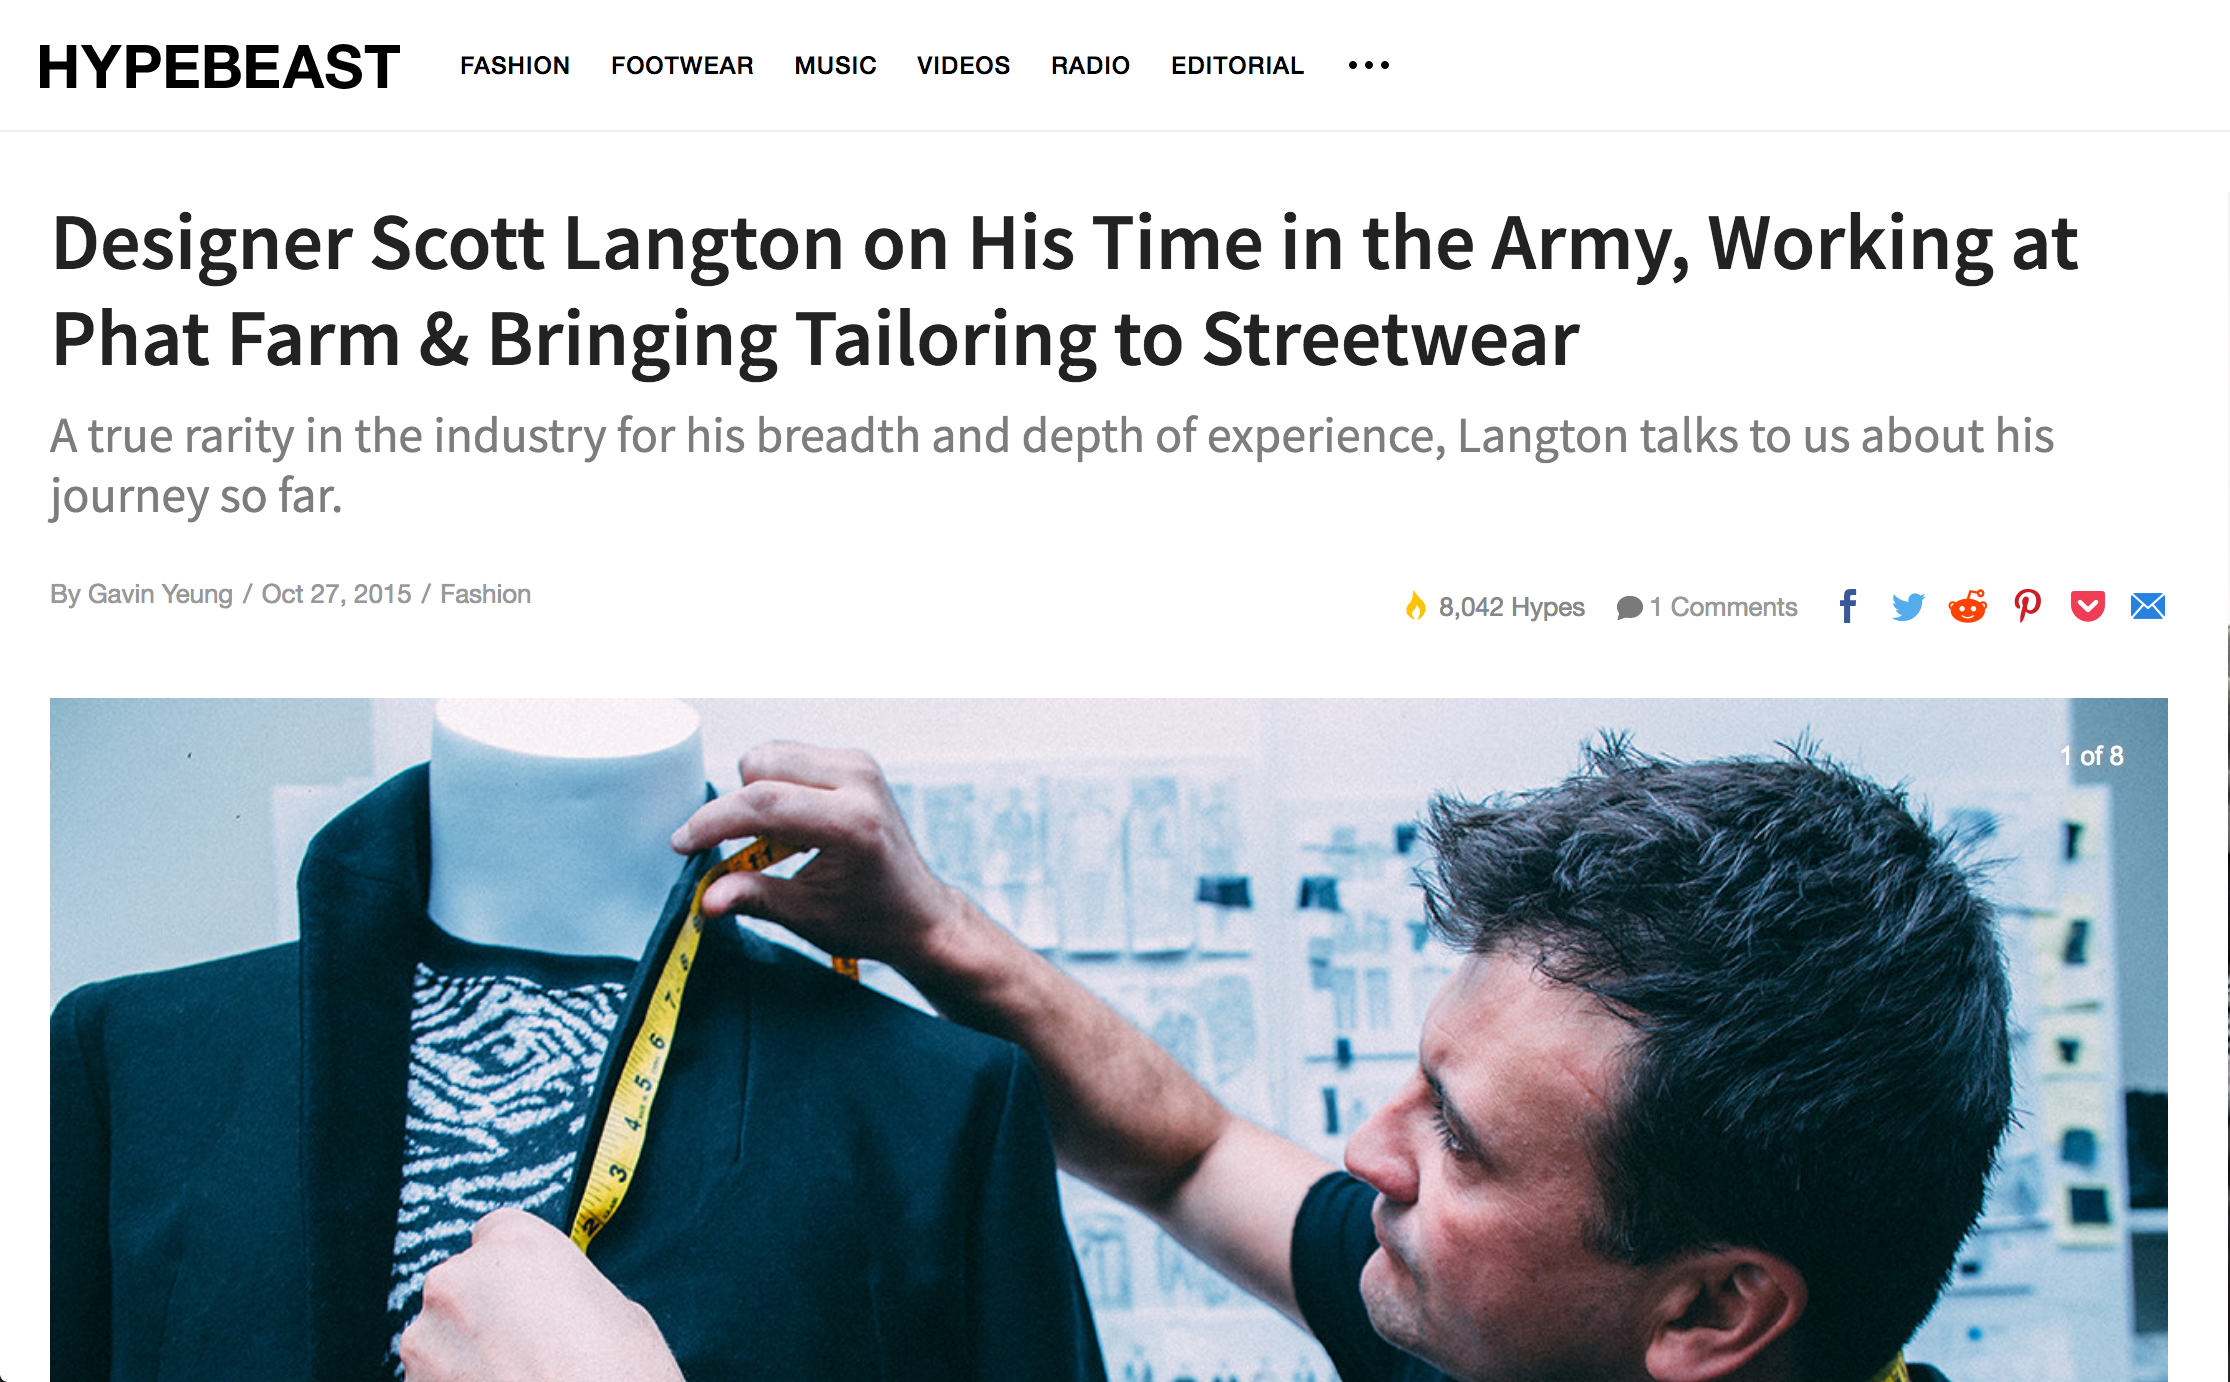 Hypebeast interview with Scott Langton